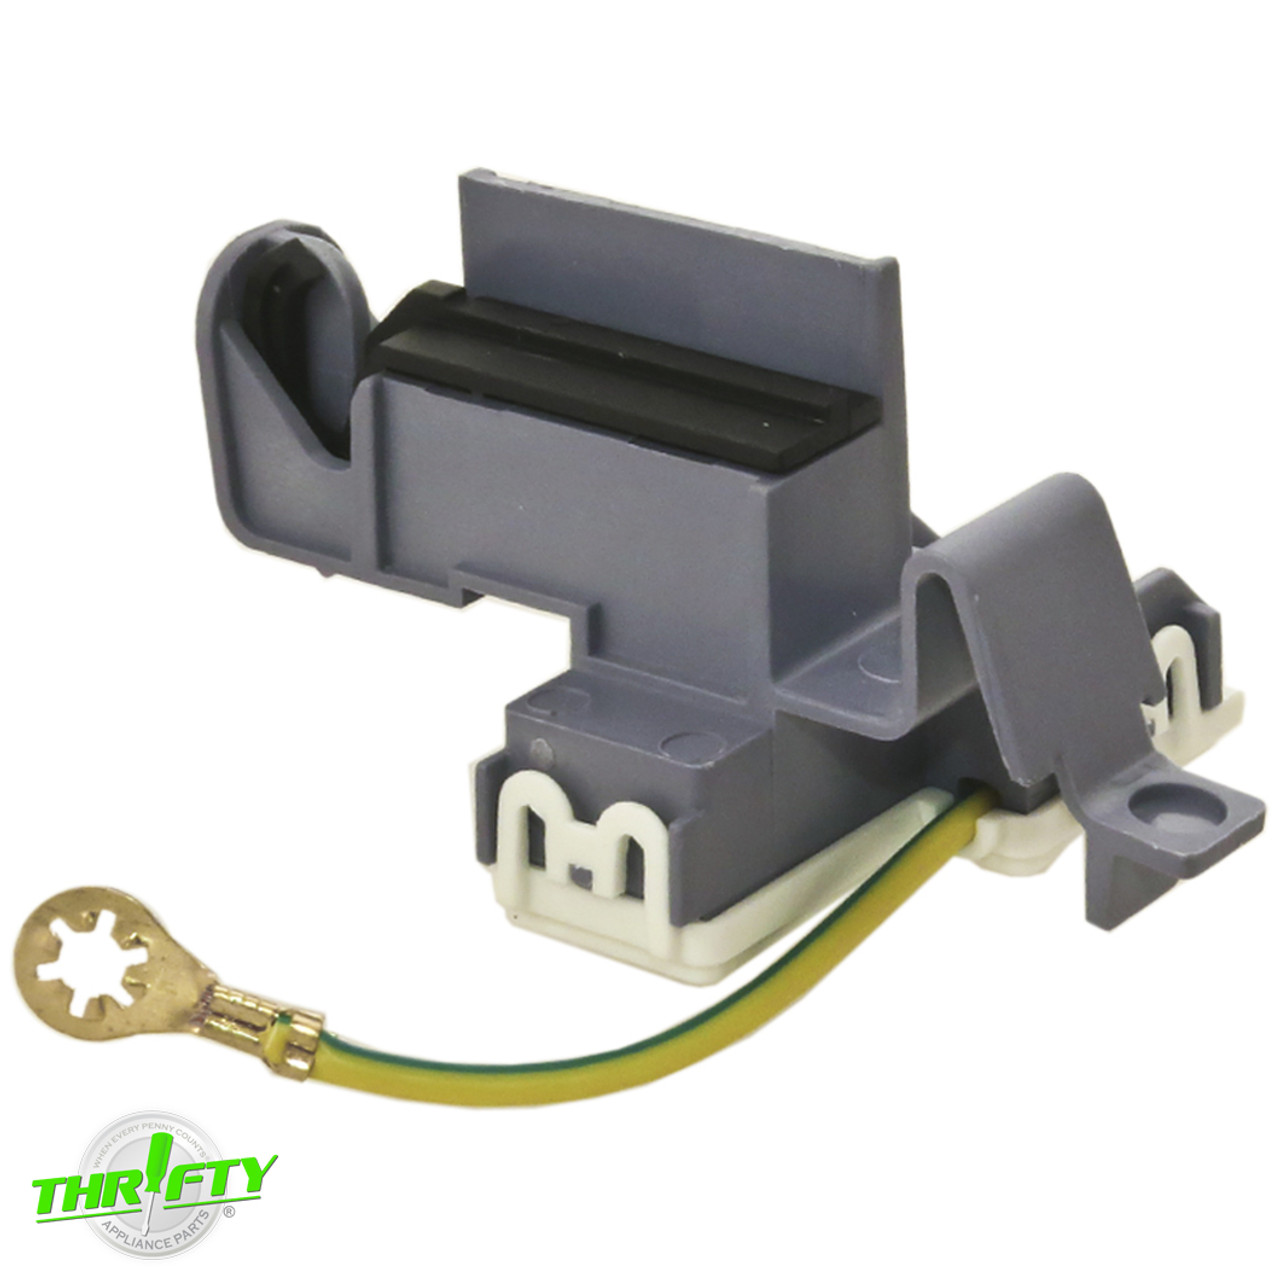 medium resolution of 8318084 whirlpool lid switch replacement thrifty appliance parts diagram parts list for model atw4475vq0 admiralparts washerparts